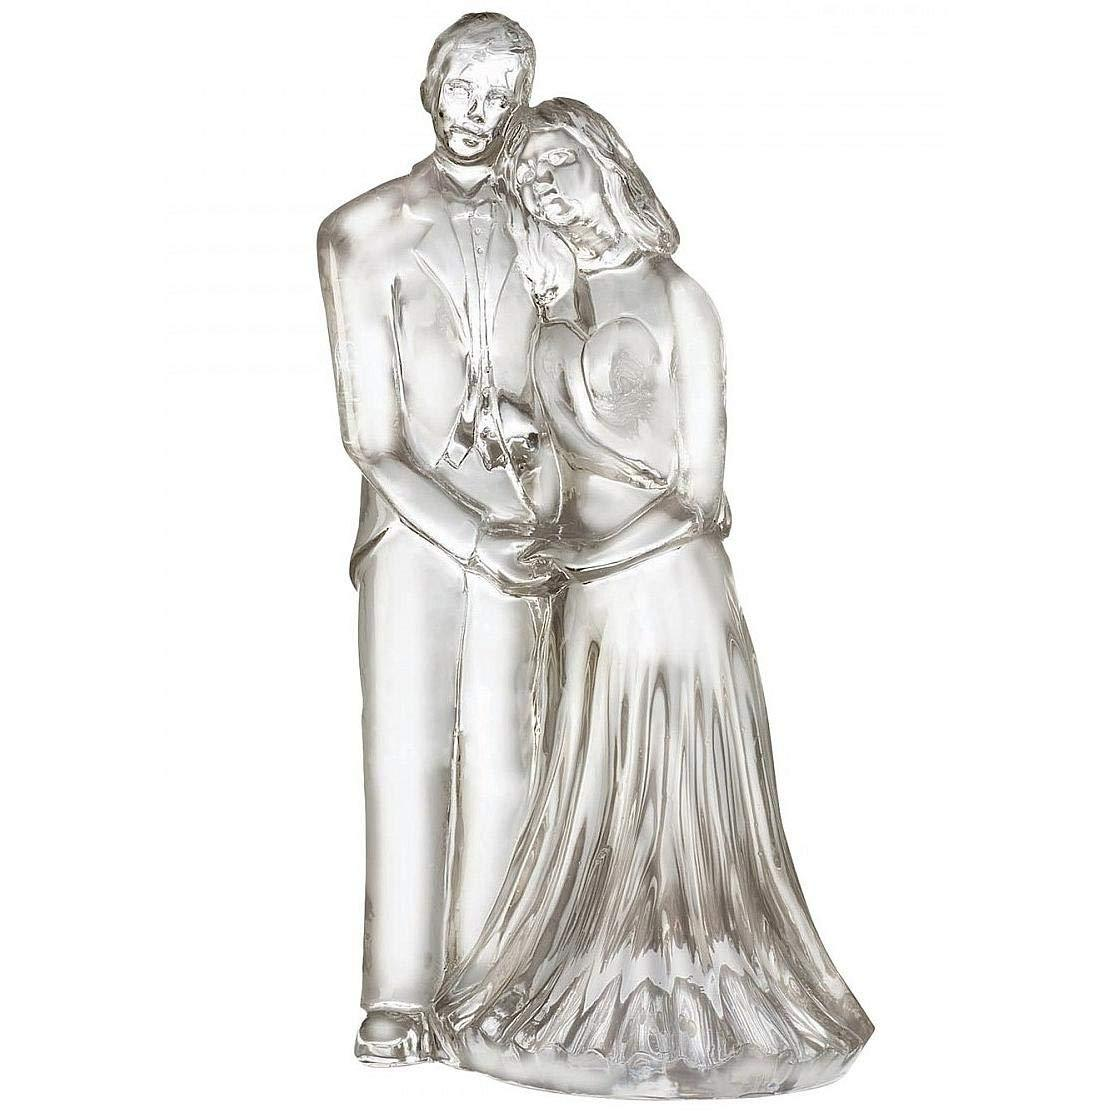 """WATERFORD LEAD CRYSTAL 7"""" HT SCULPTED BRIDE & GROOM FIGURINE MADE IN IRELAND NEW - $344.75"""